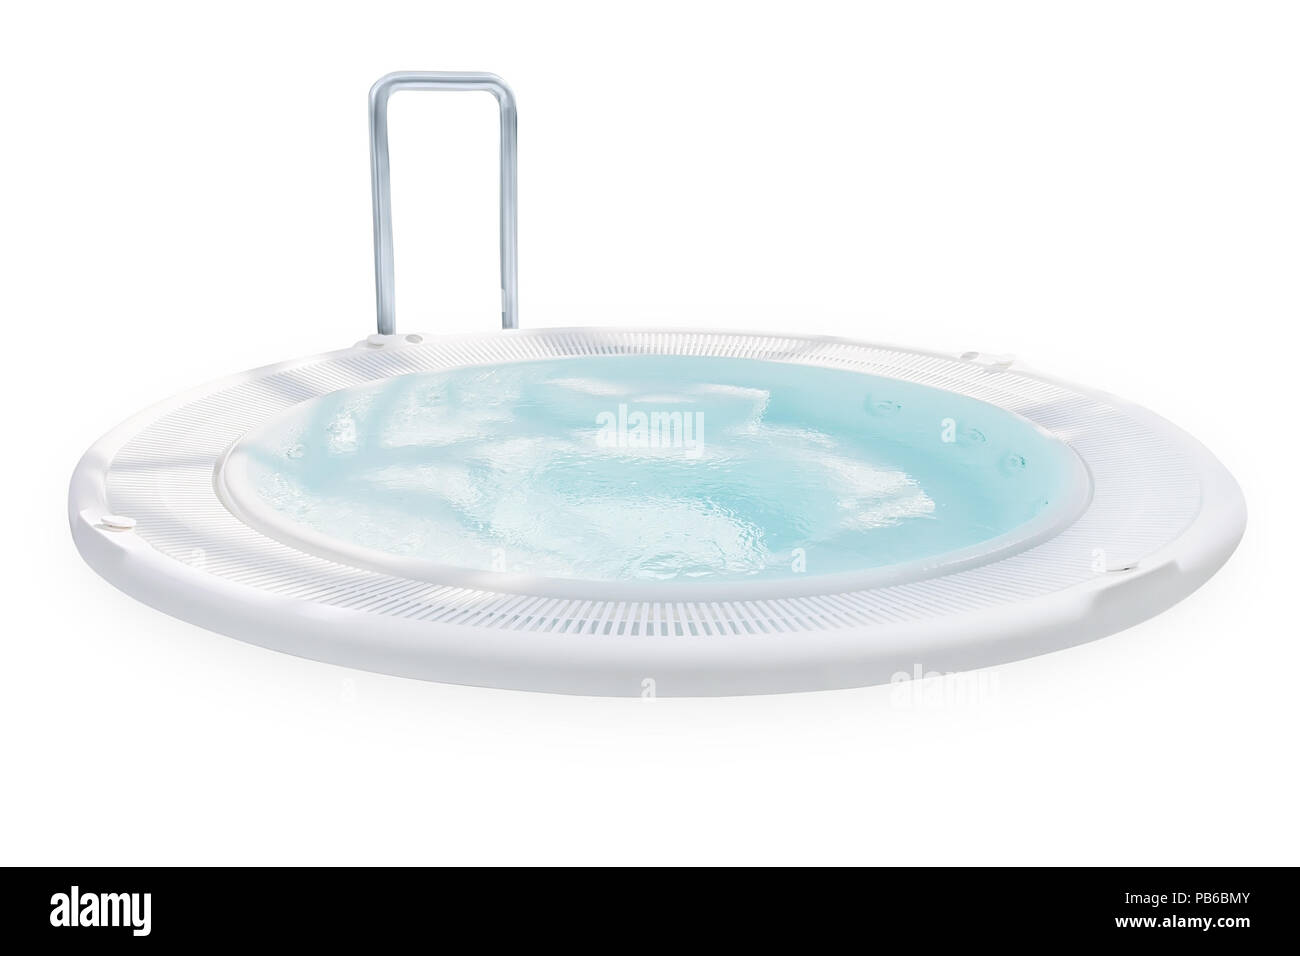 Jacuzzi Pool Main Drain Swimming Pool With Jacuzzi Isolated With Clipping Path Stock